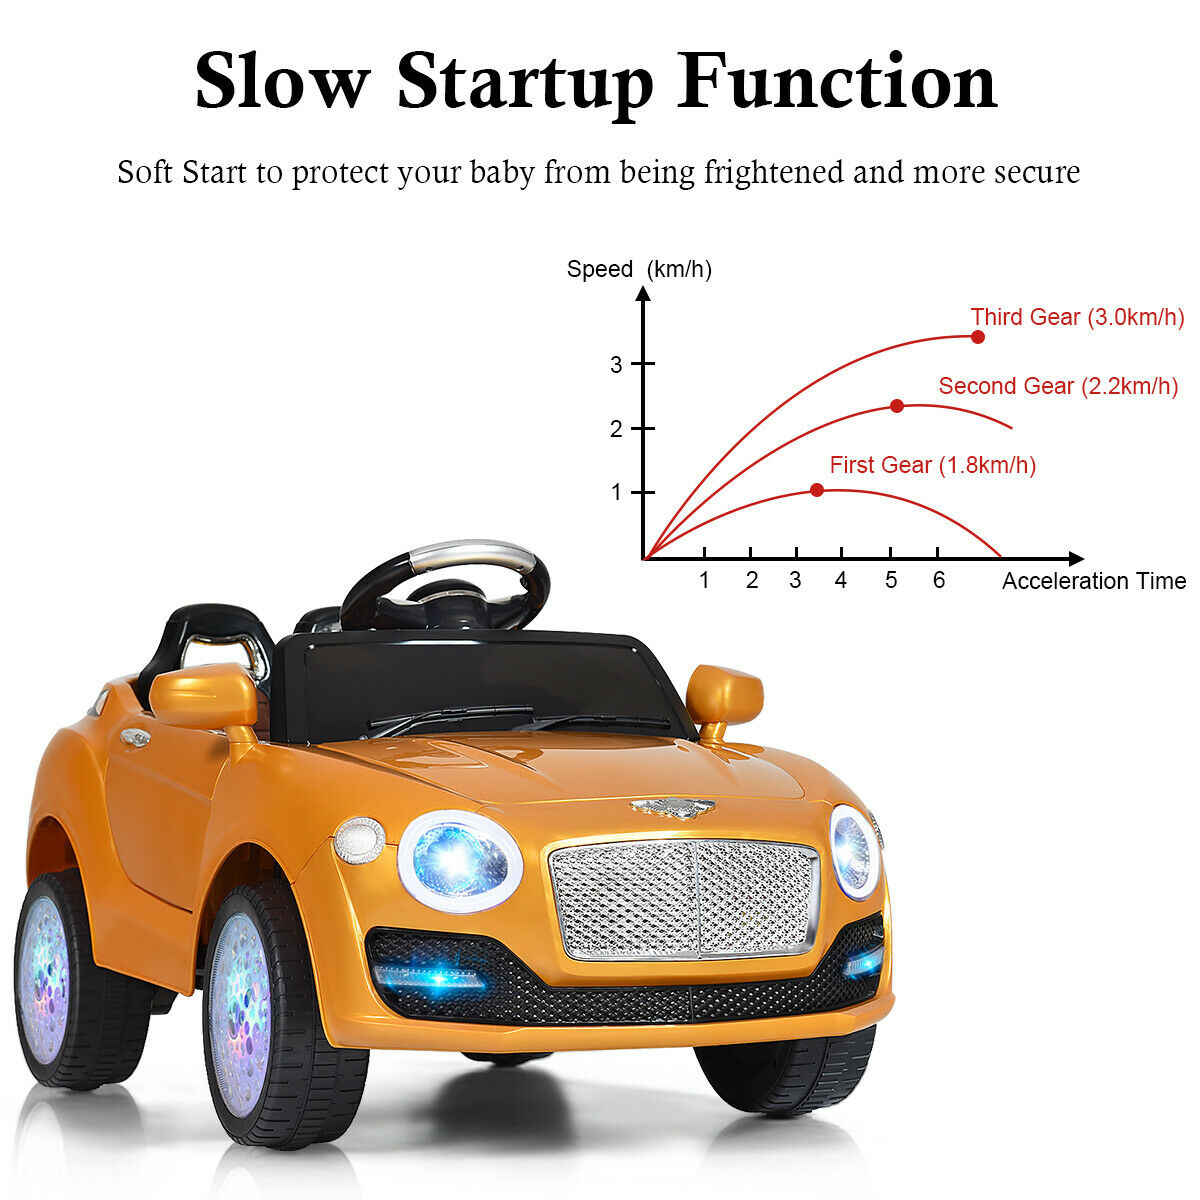 Costway 6V Kids Ride On Car Electric Battery Power RC Remote Control & Doors w/ MP3 Red/White/Golden - FLJ CORPORATIONS